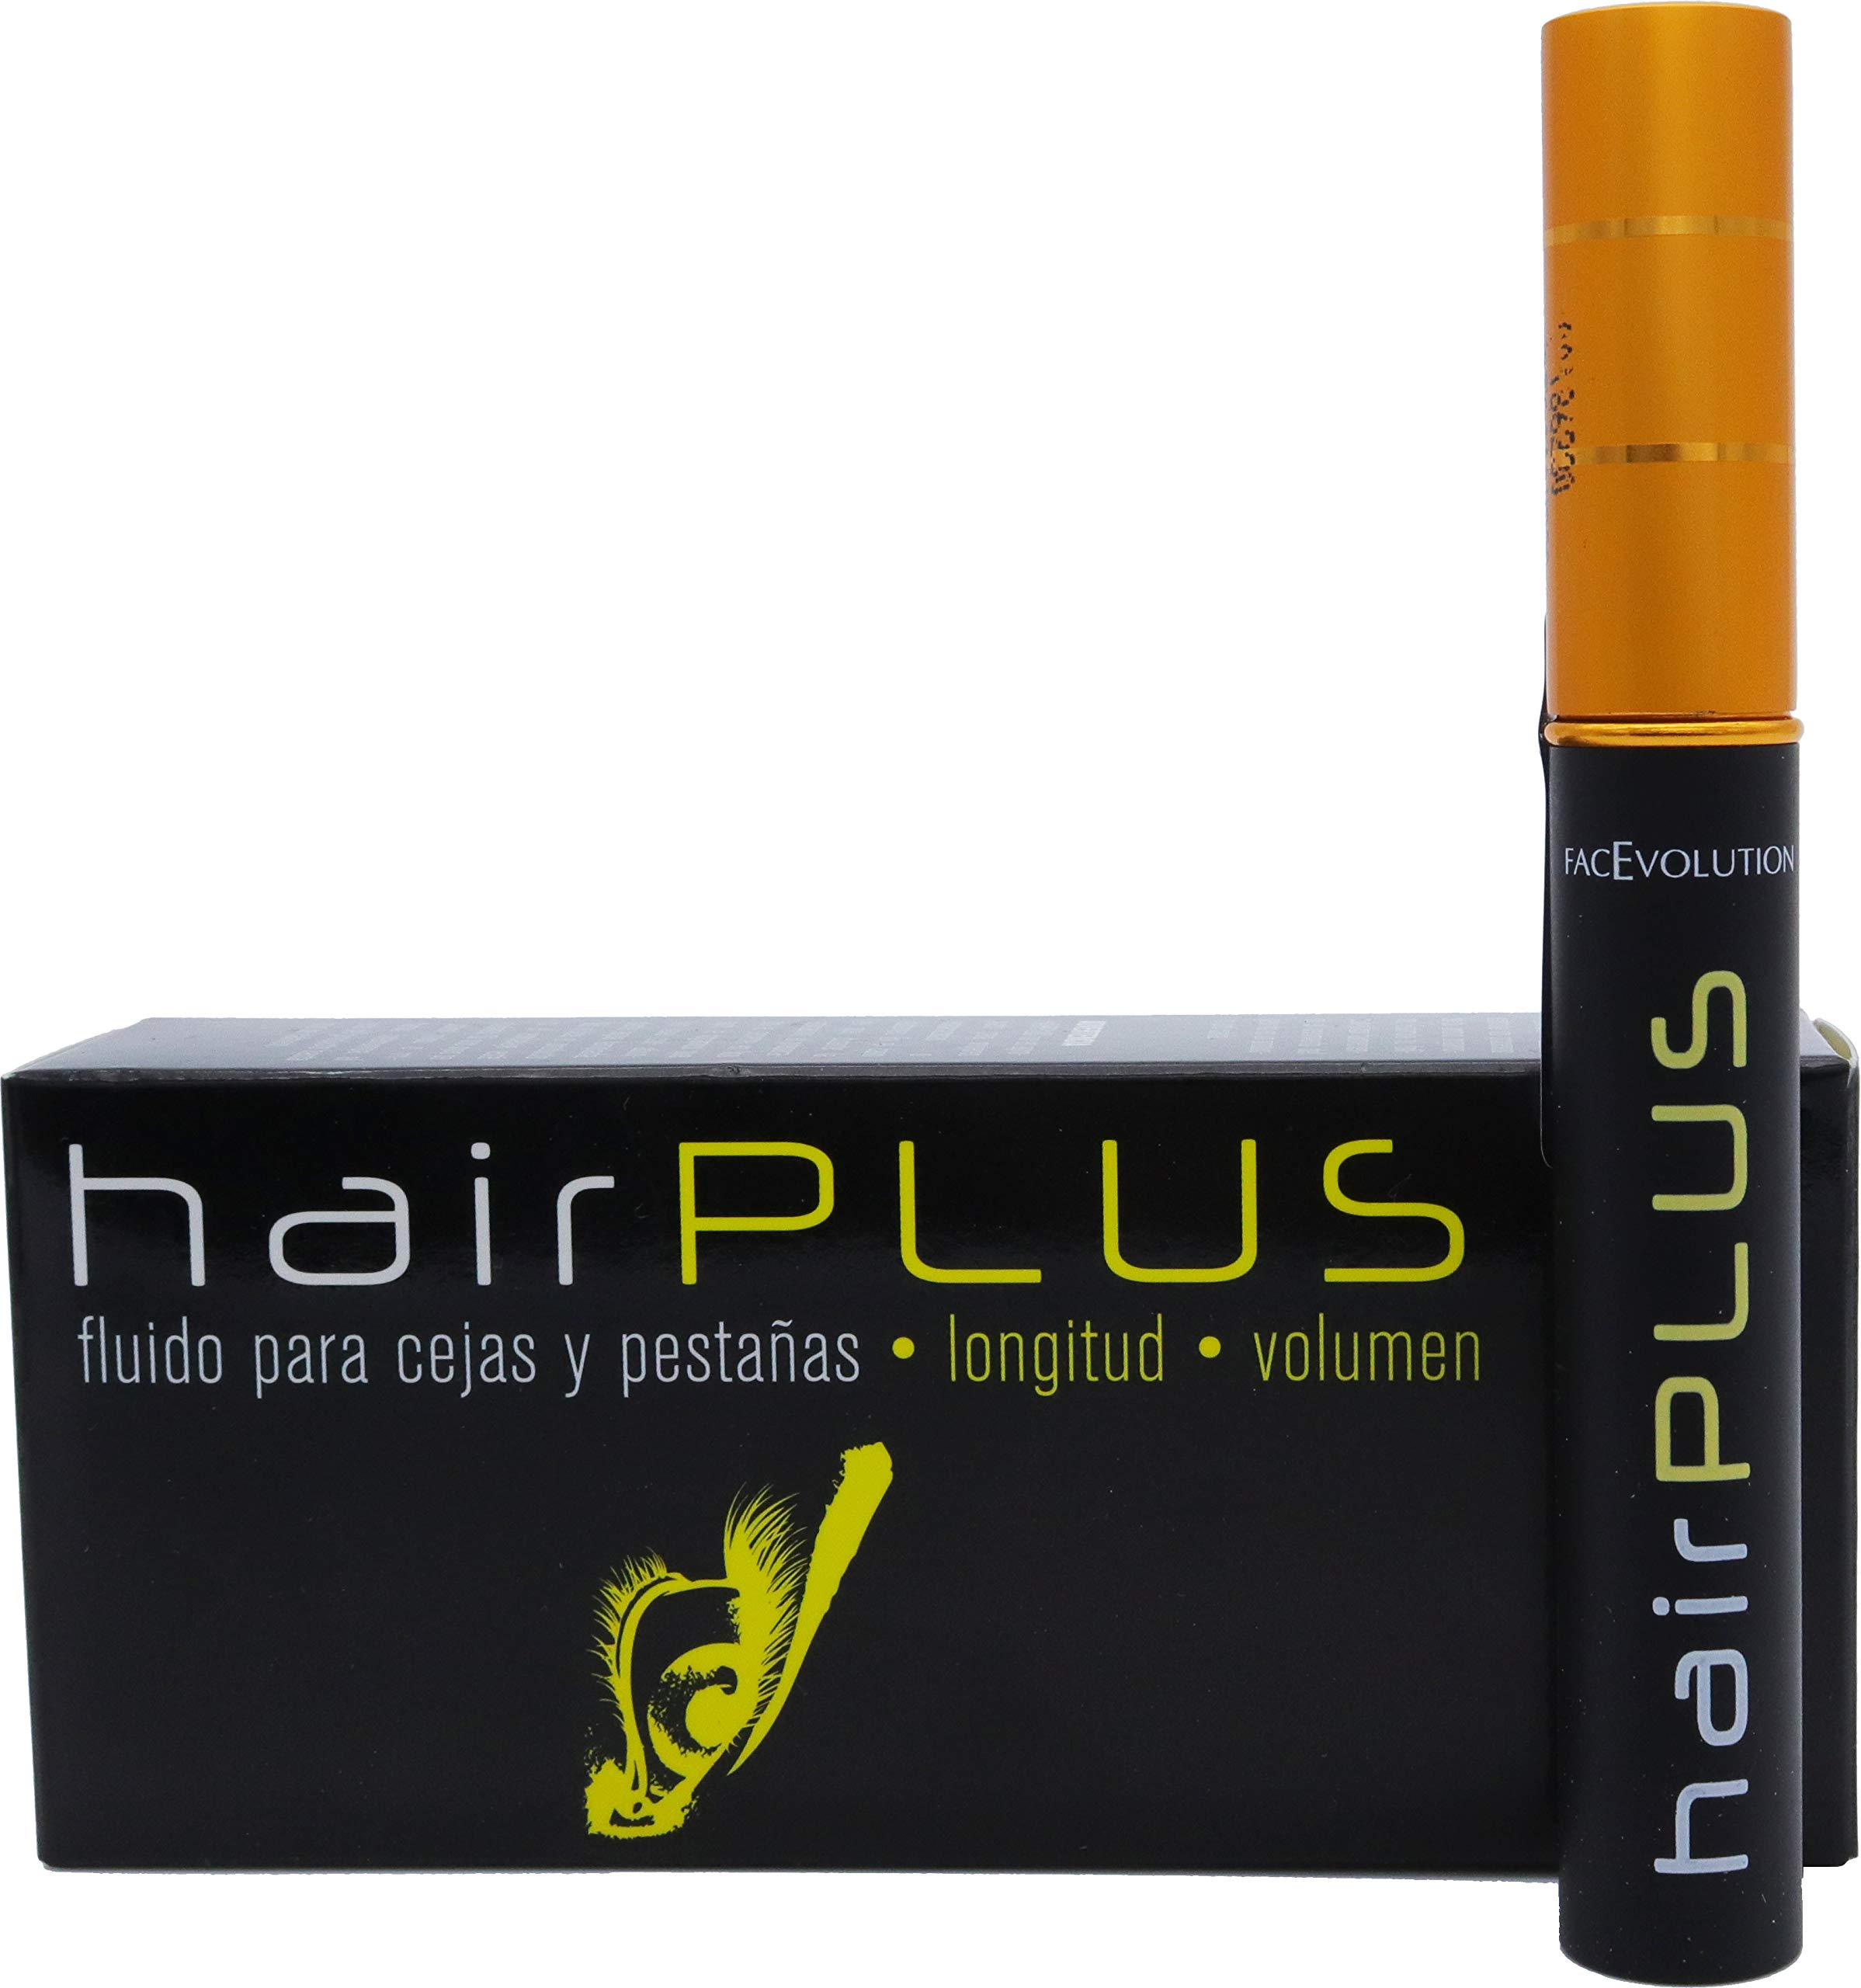 Serum Pestañas HairPlus para pestañas y cejas mayor Volumen mas Longitud y Grosor